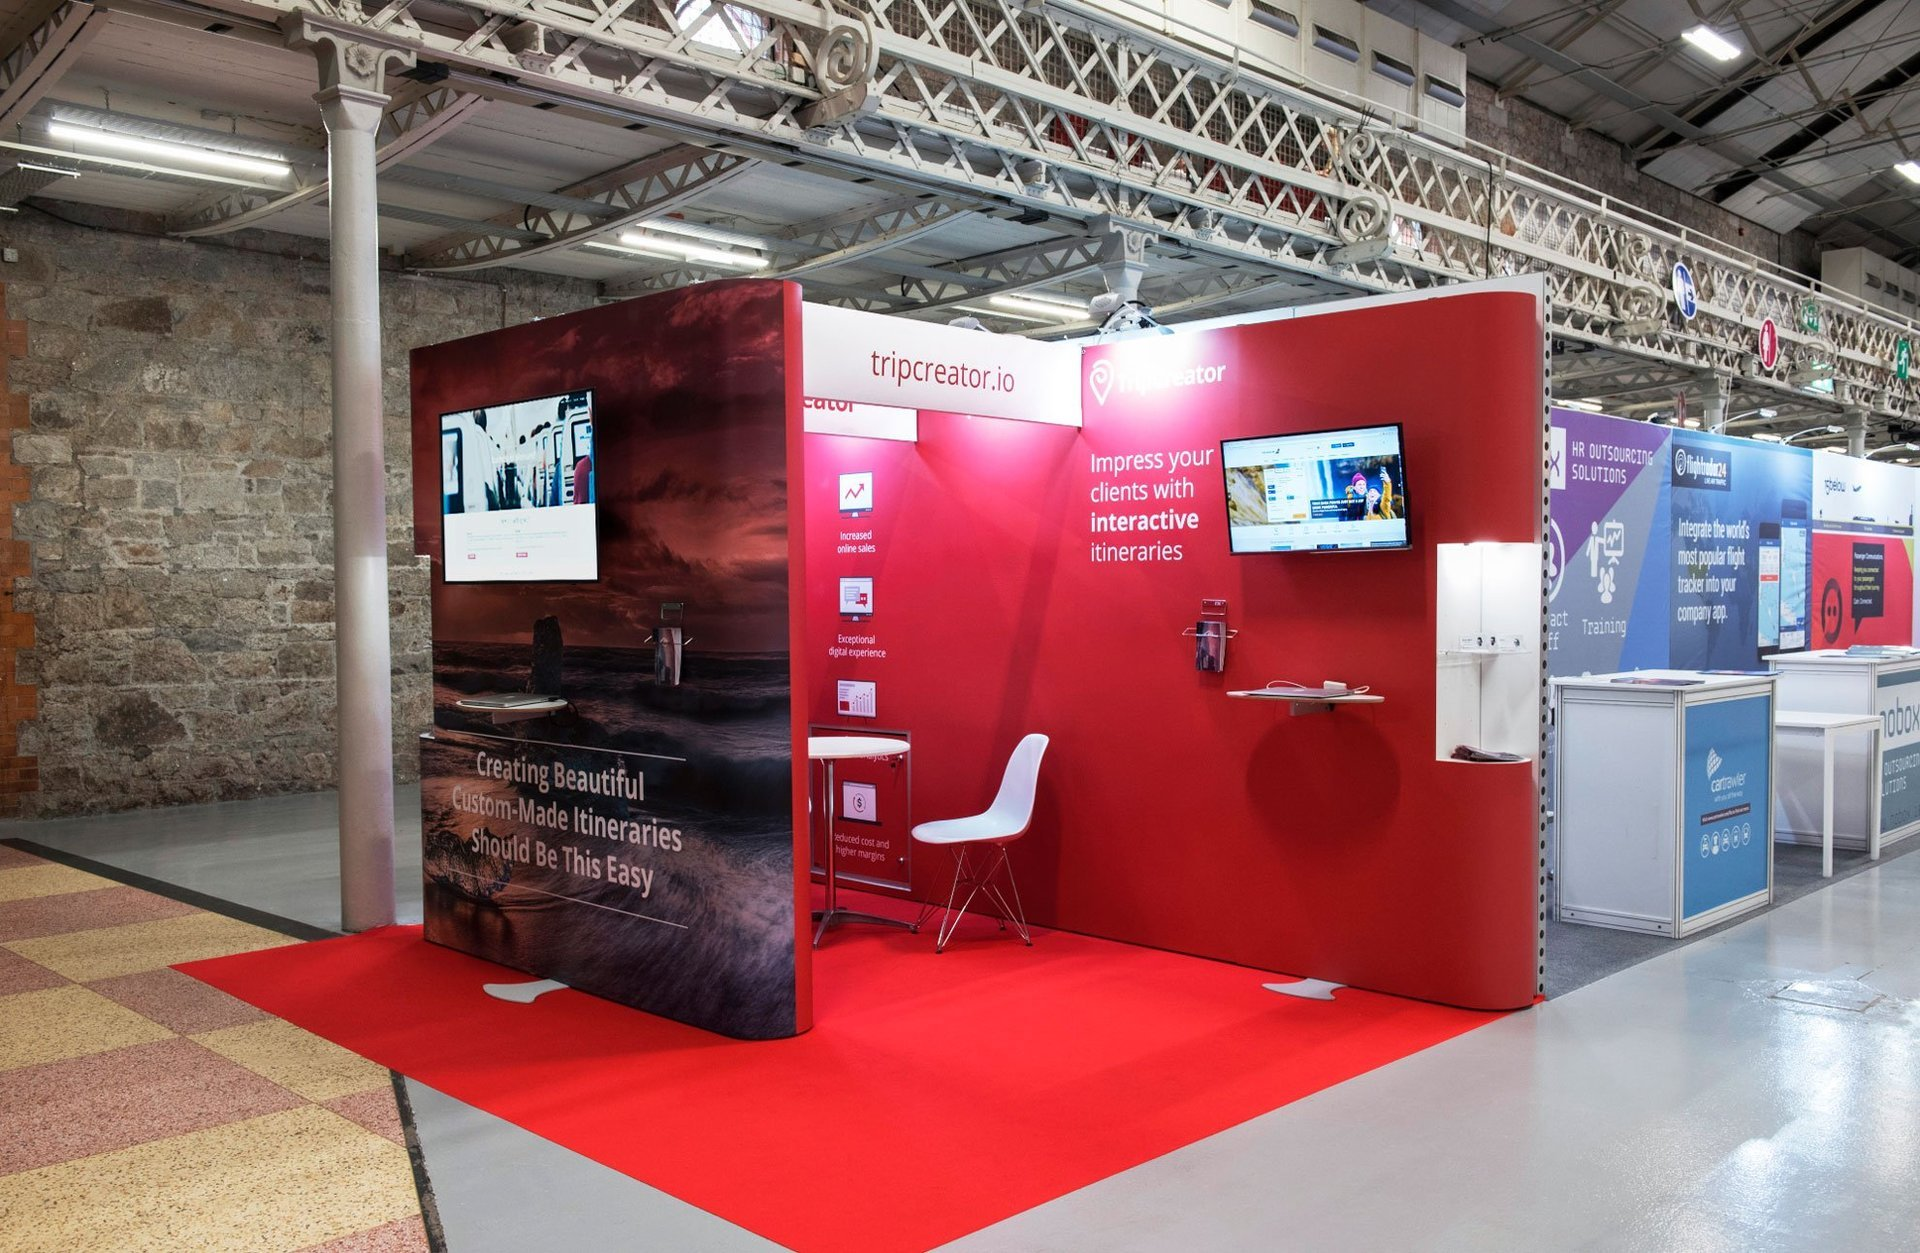 Exhibition Stand Equipment Hire : Exhibition equipment hire in berkshire from precision events